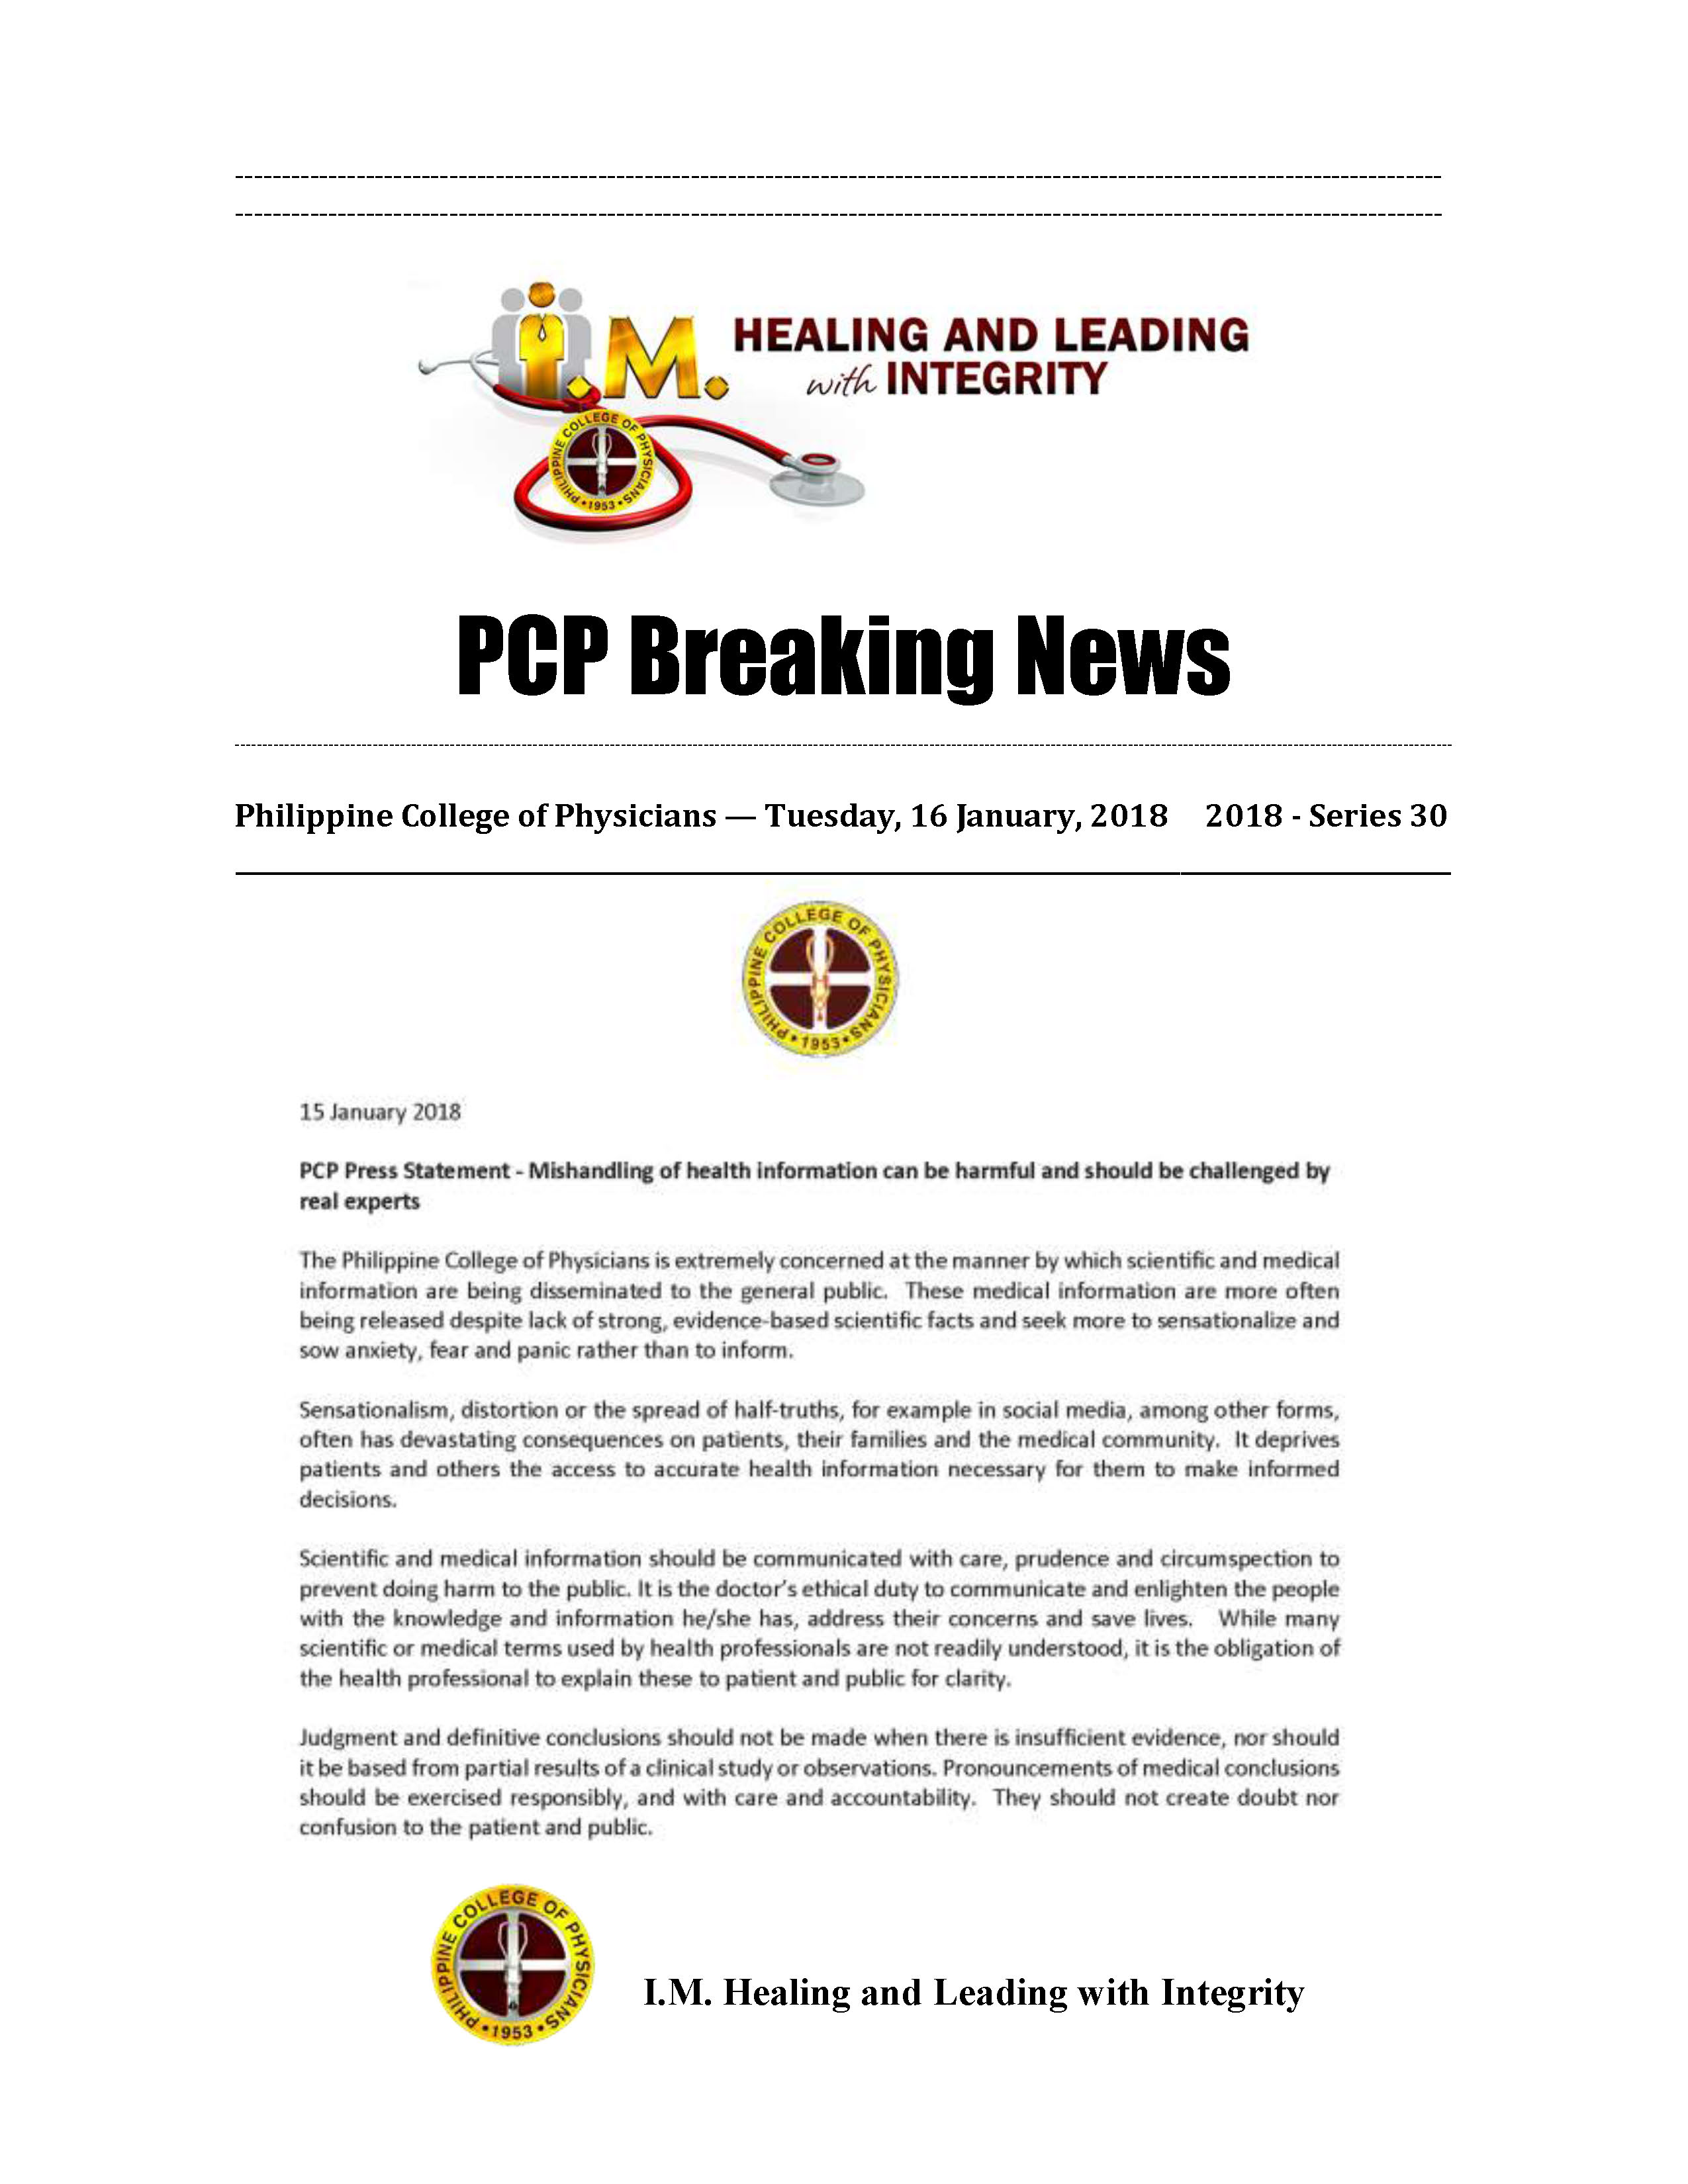 PCP Breaking News 2018 Series 30 Page 1